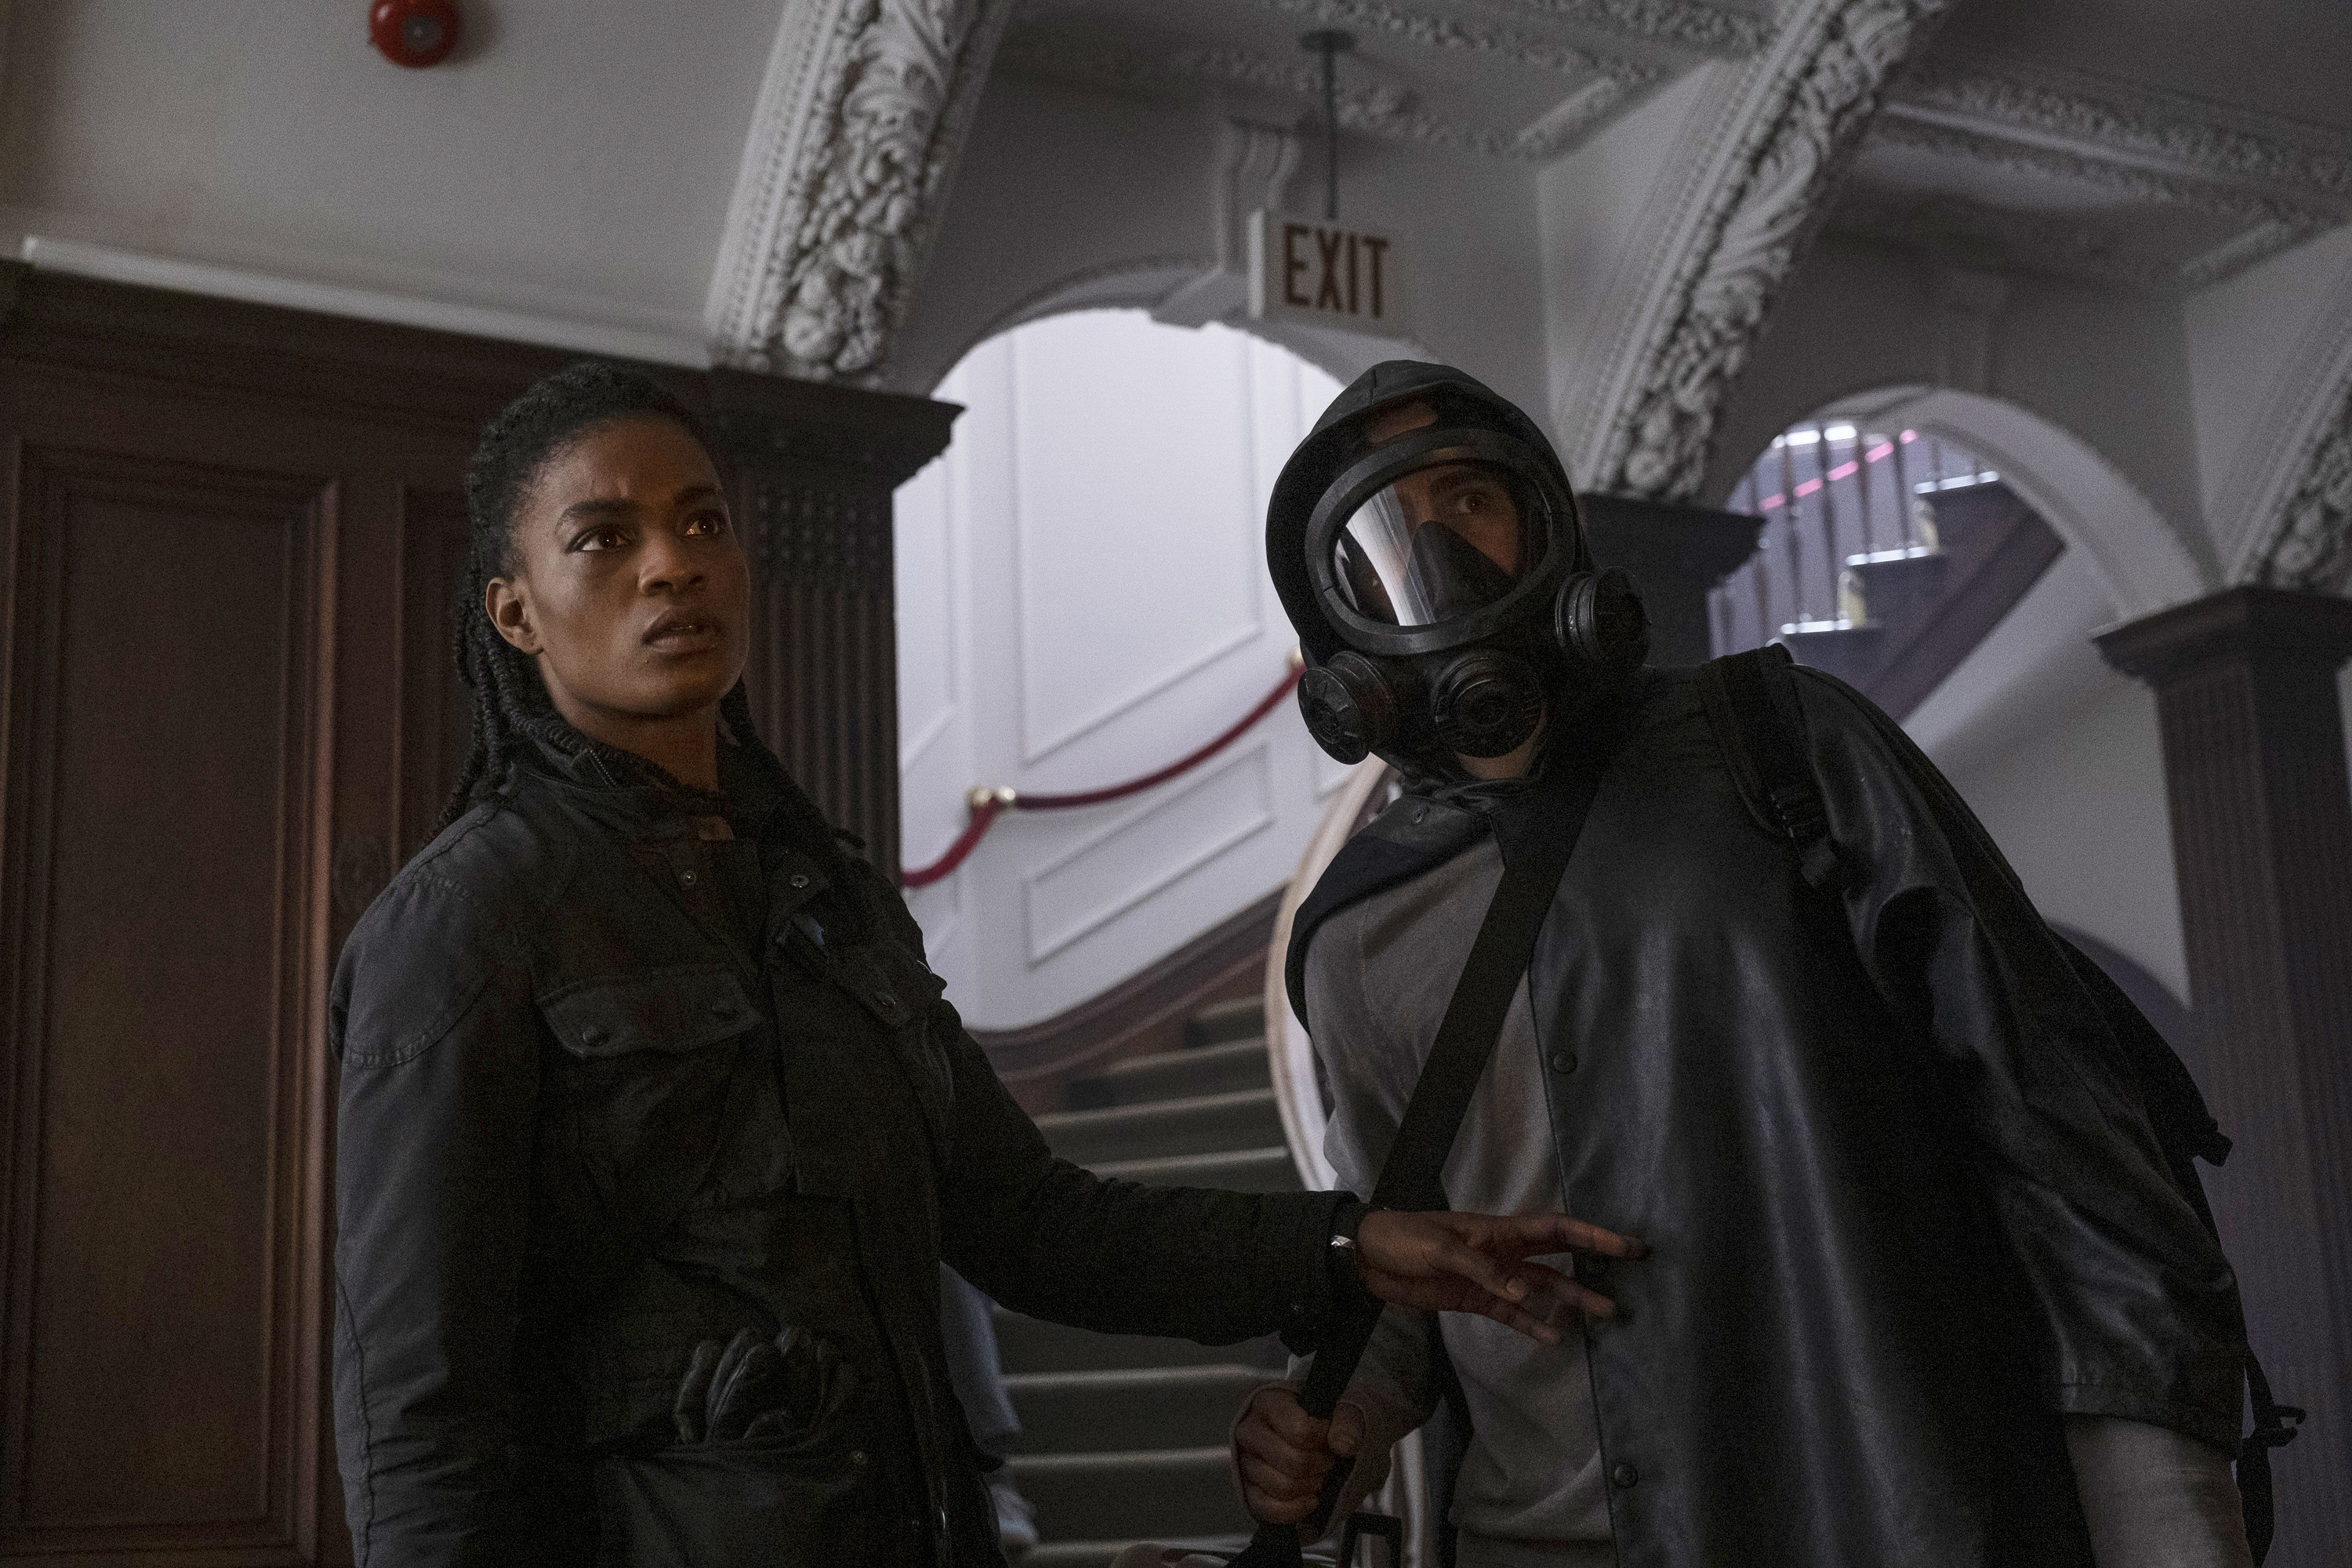 Agent 355 and Yorick (in a mask) look  in concern at something just off-camera.